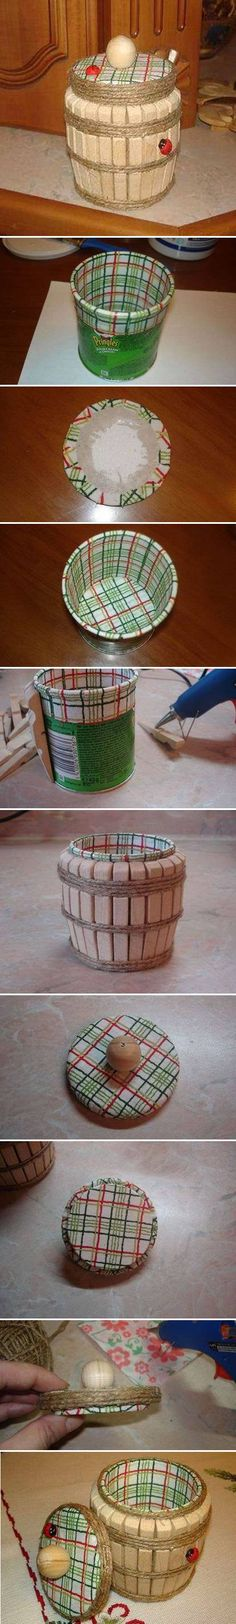 Most amazing site EVER! New crafts/DIY daily(ish) that are easy to make and look awesome! A pringles can and clothespins make this container! How mush easier can it get! Craft Stick Crafts, Crafts To Make, Crafts For Kids, Arts And Crafts, Diy Crafts, Diy Projects To Try, Craft Projects, Craft Ideas, Diy Ideas